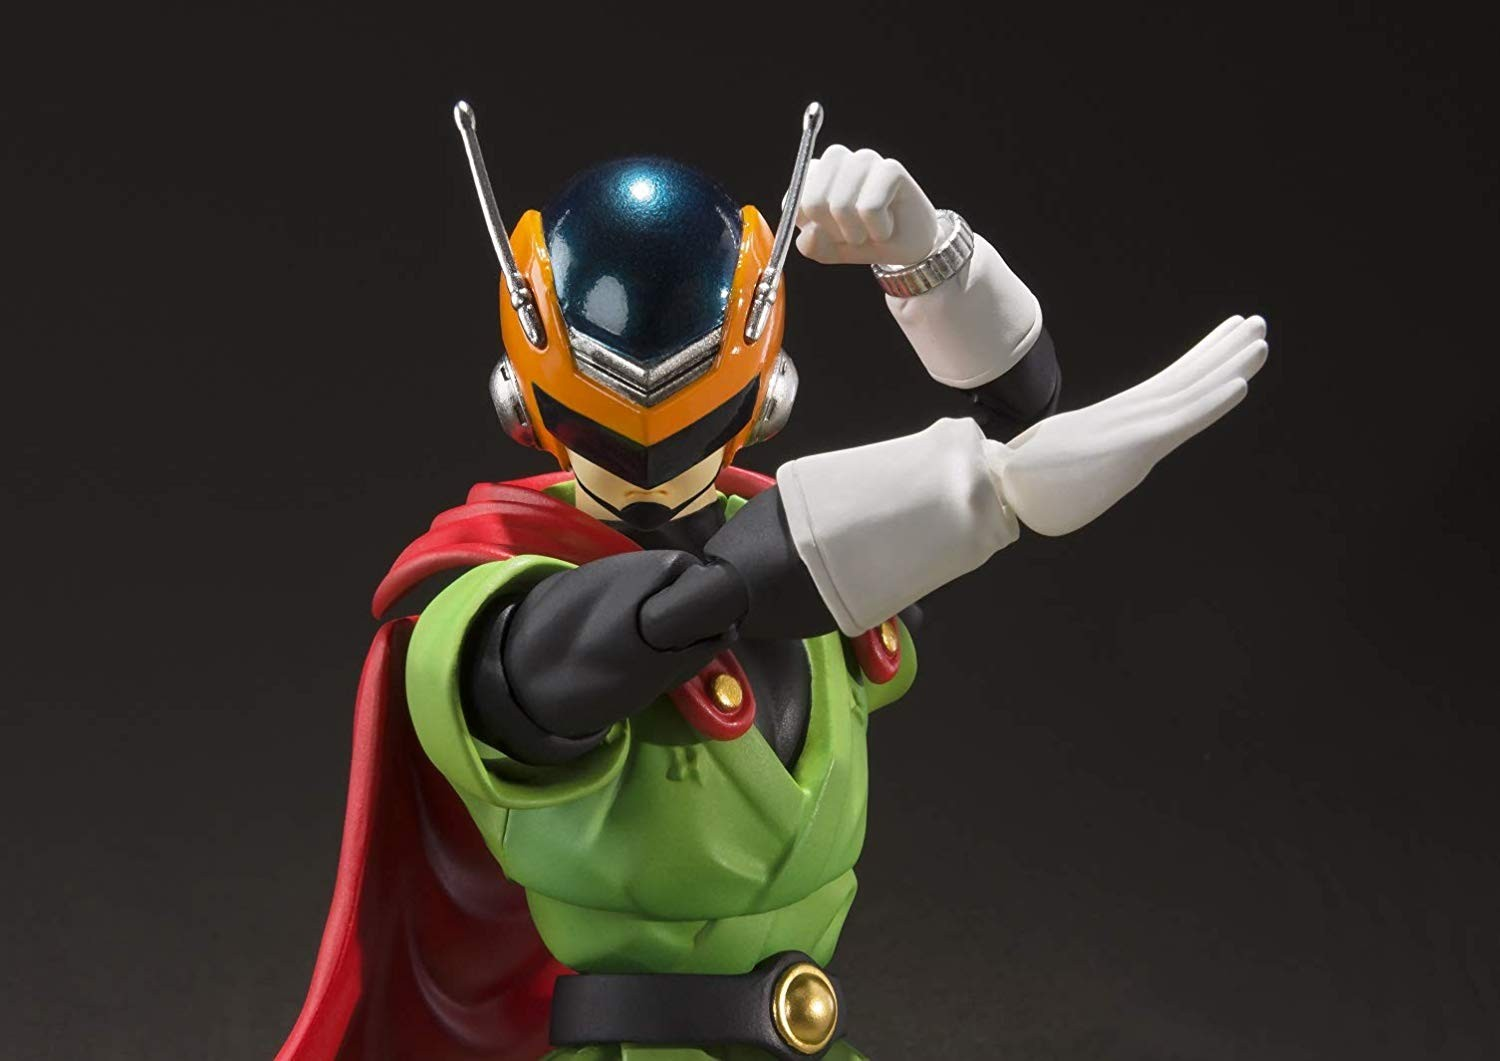 Figurine Dragon Ball Z - Great Saiyaman S.H.Figuarts 15.5cm